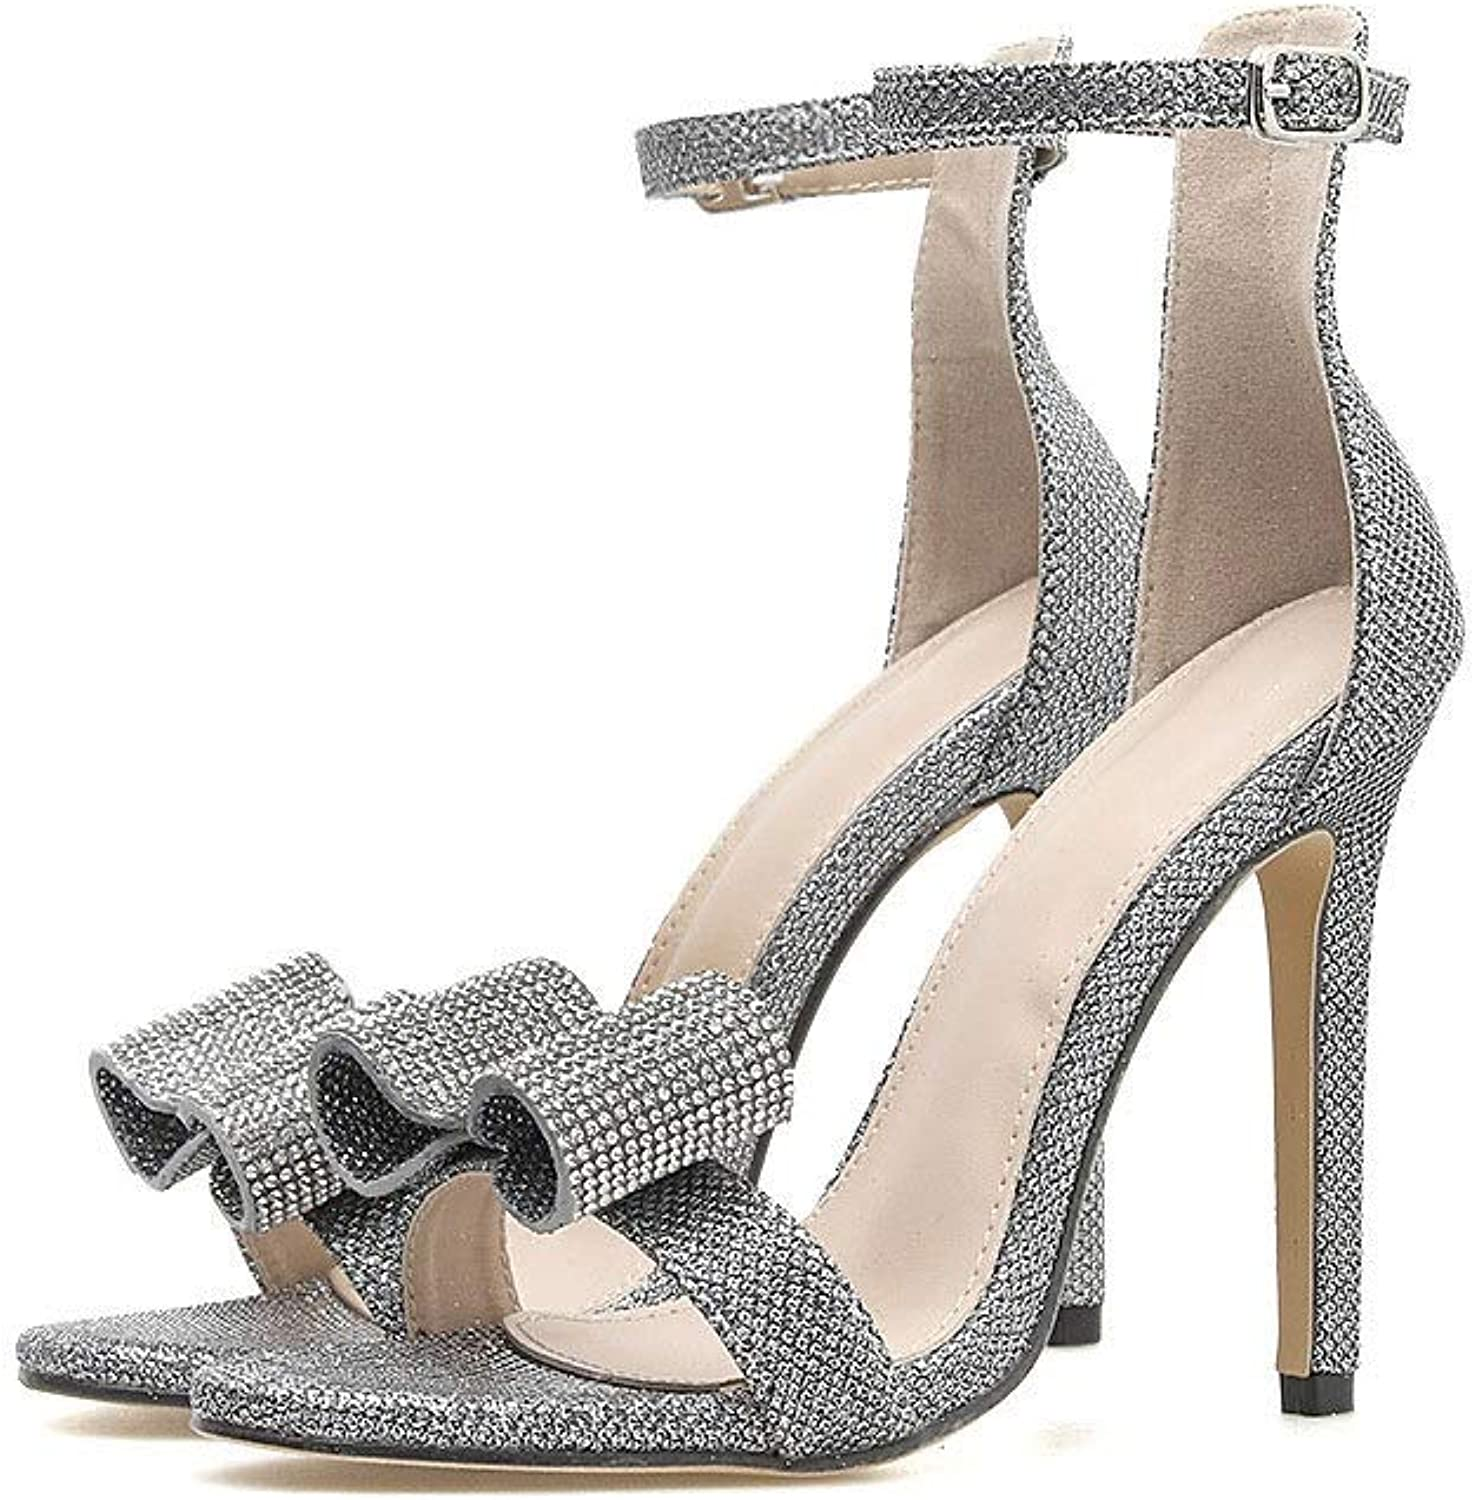 Rhinestone Big Bow High Heel Word with Sandals (color   Silver, Size   7 US)